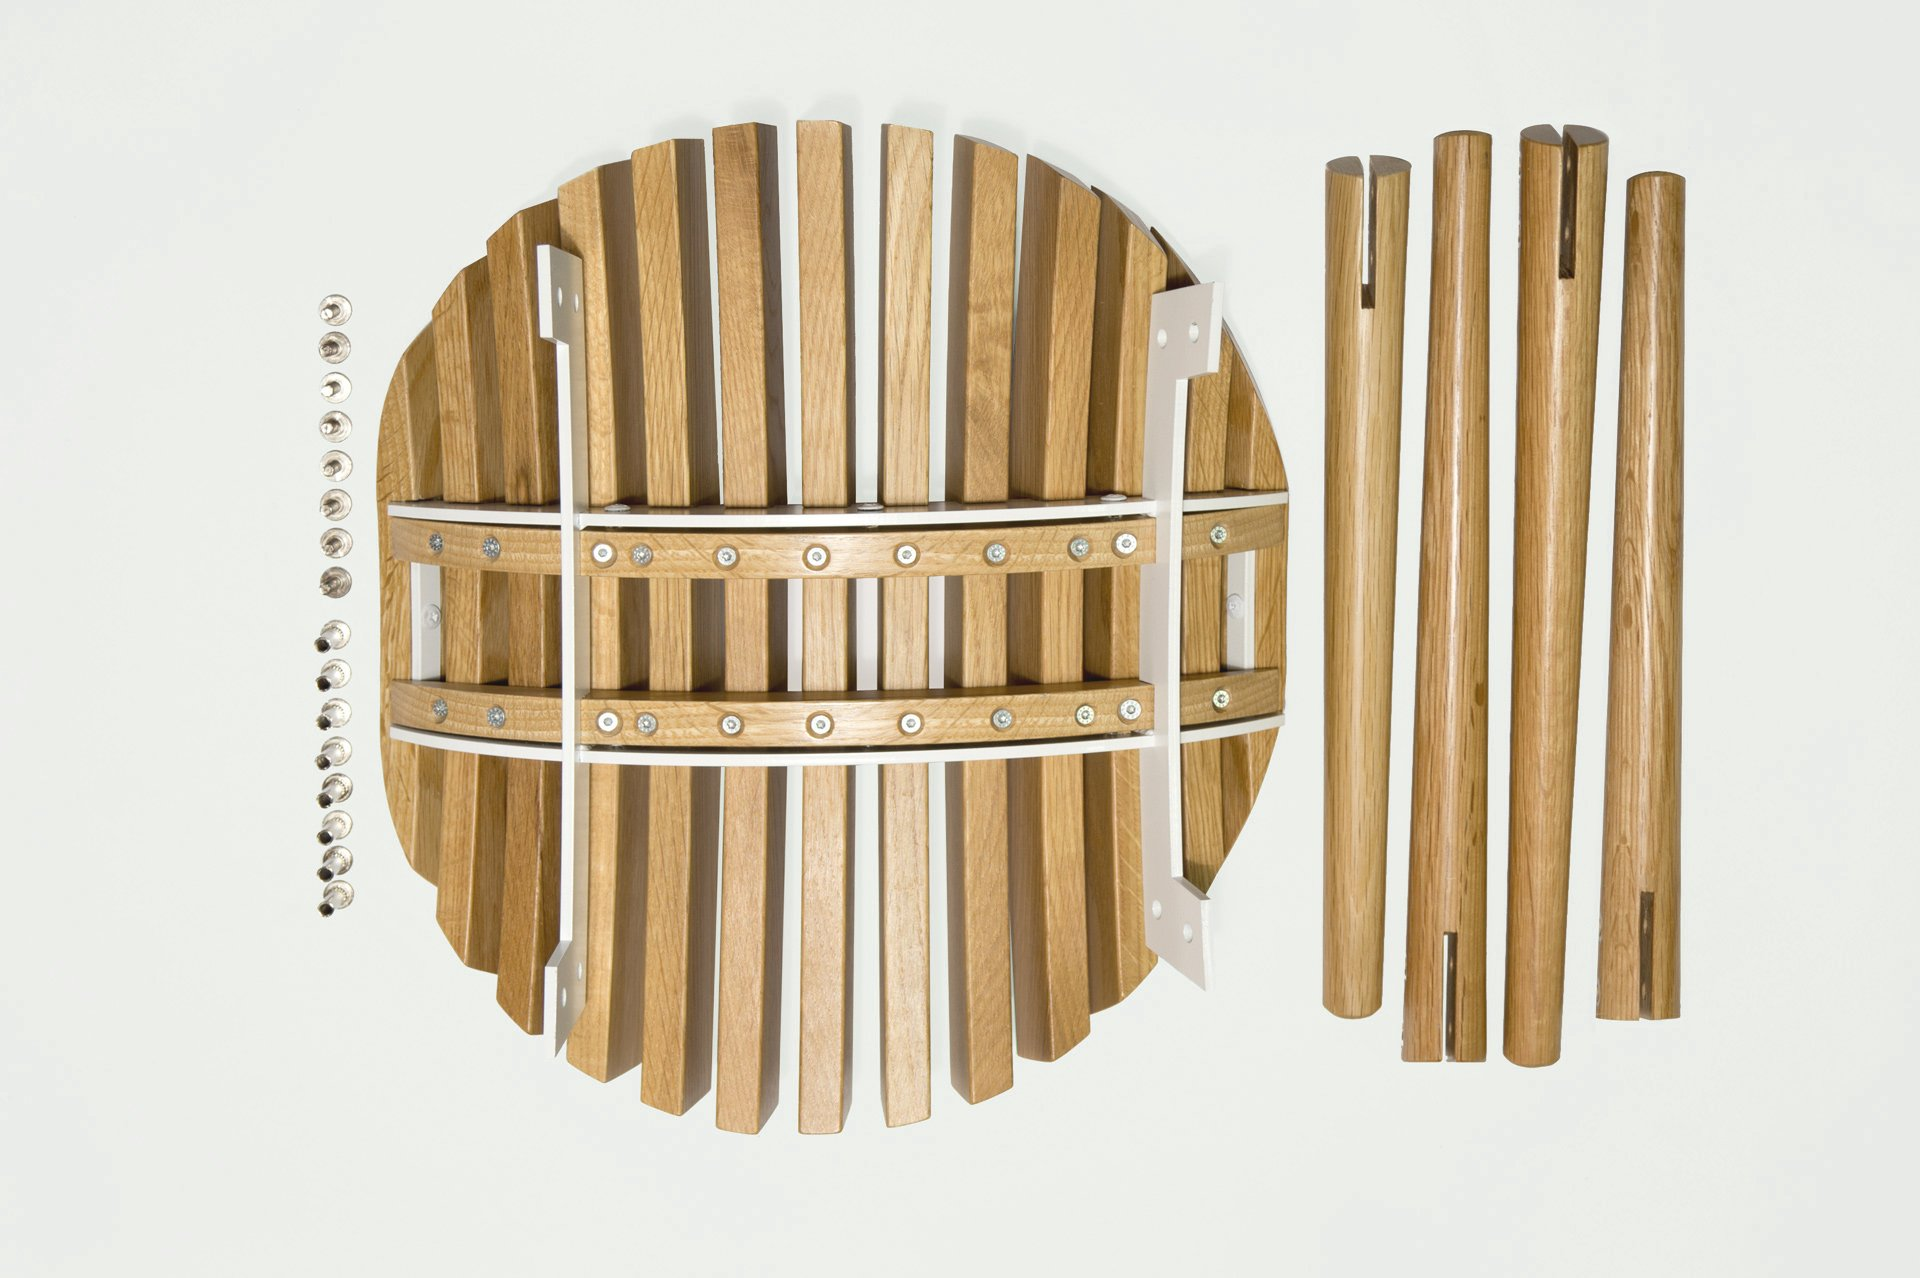 Ane stool components